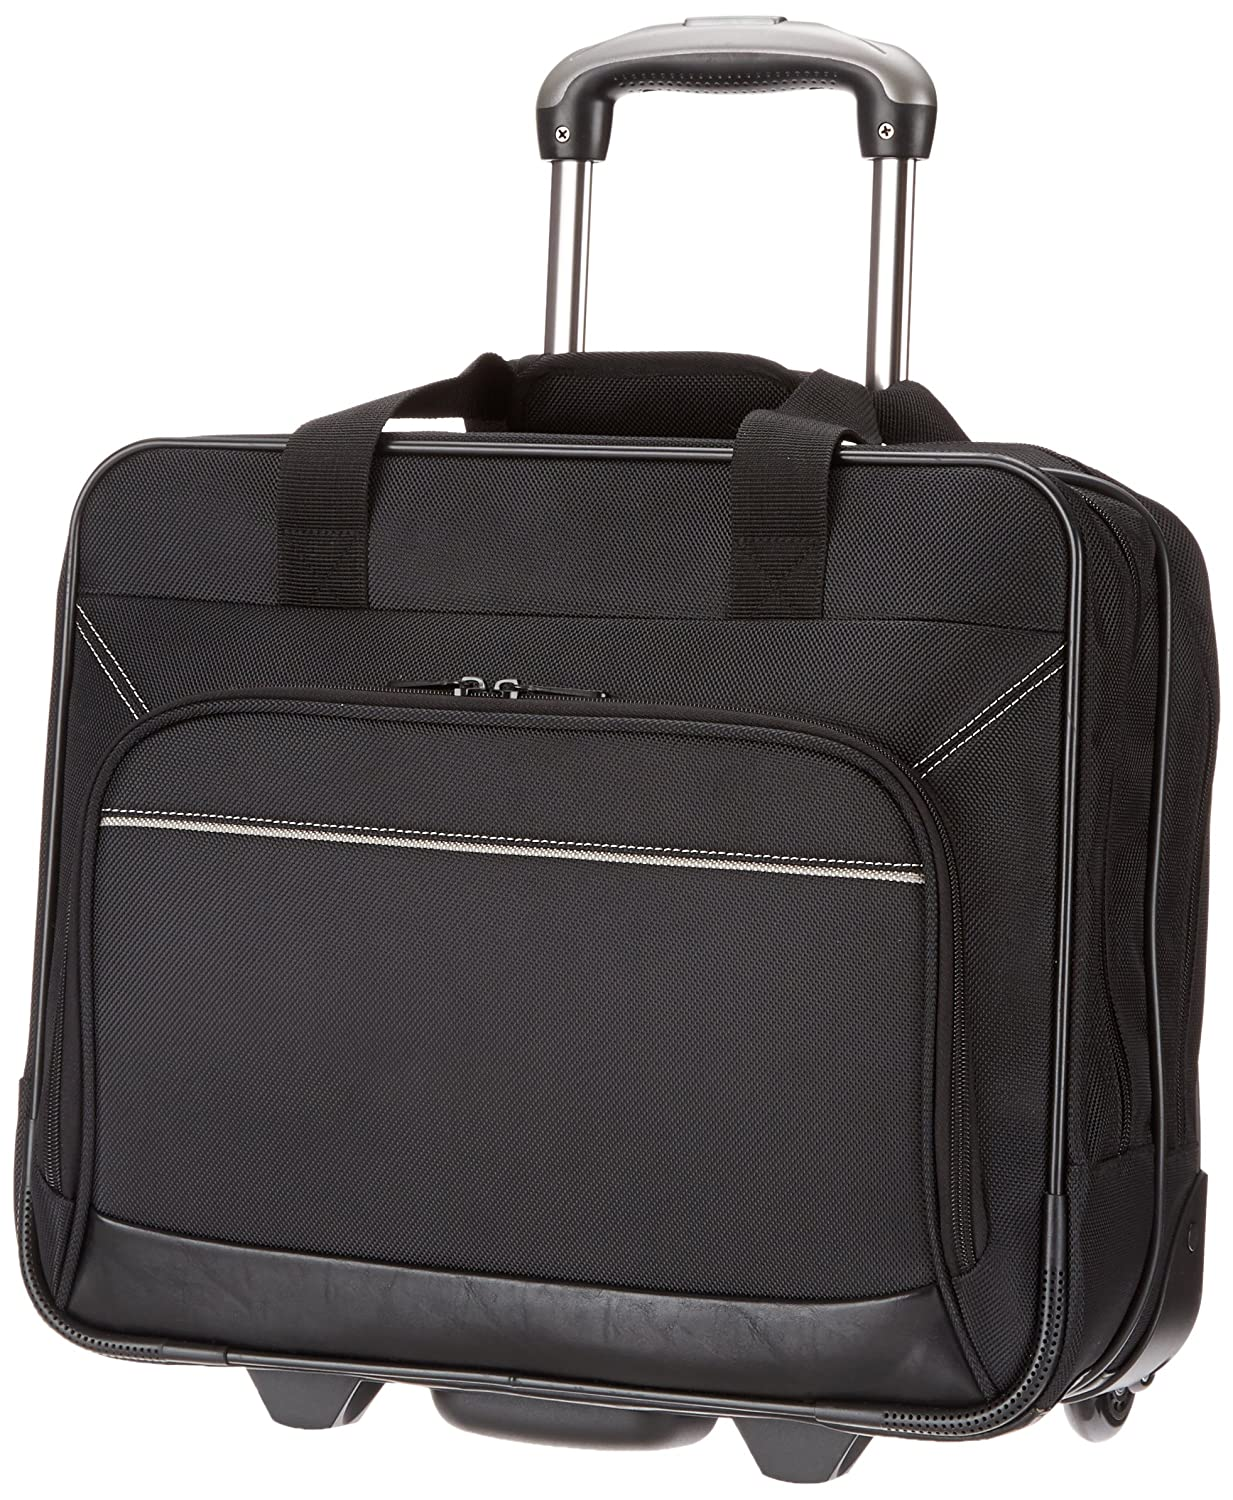 e7483b066e AmazonBasics Rolling Laptop Case on Wheels - Fits Most Laptops up to 16